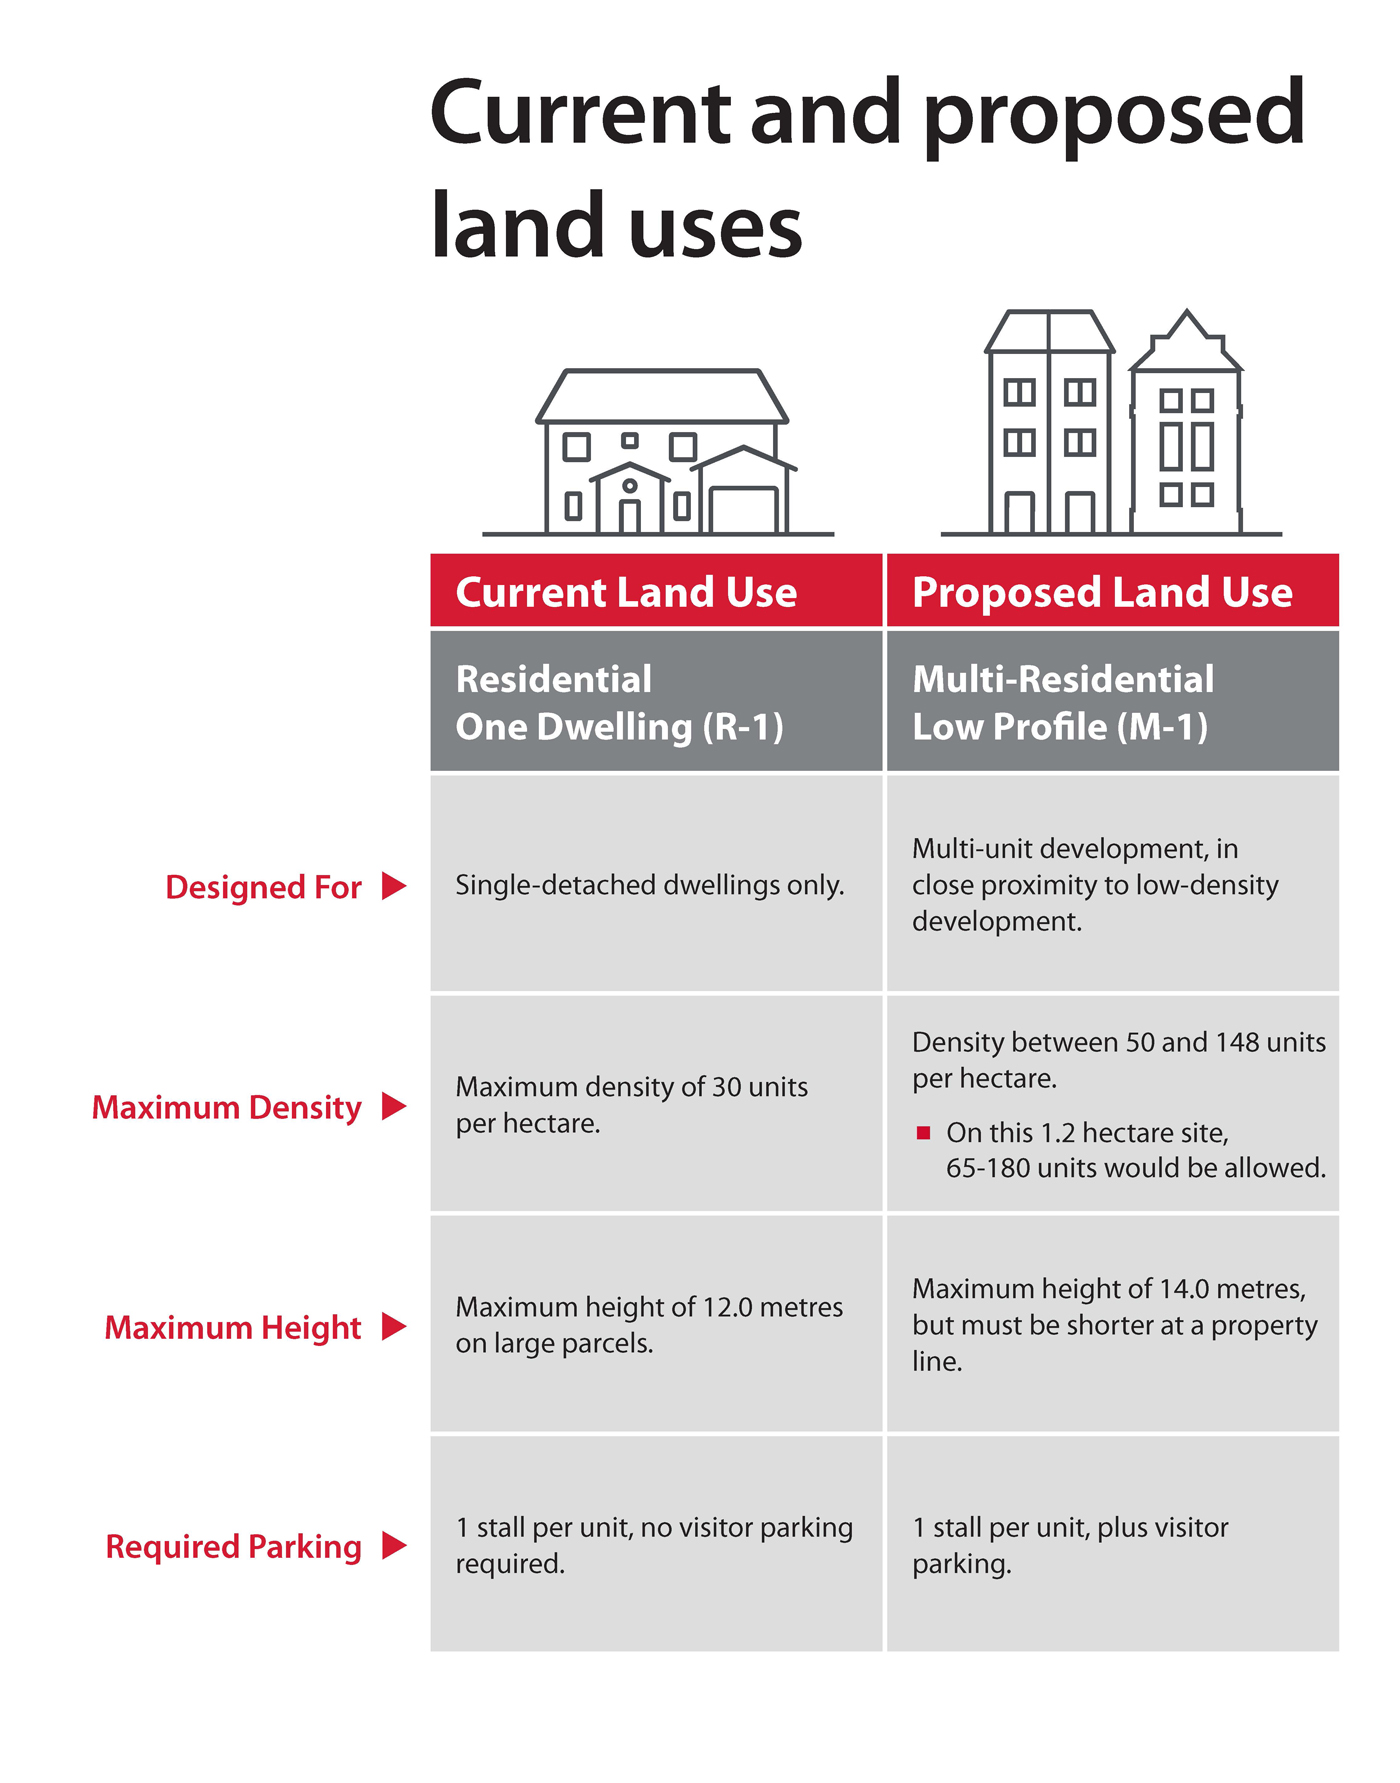 Current Land Use: Residential One Dwelling (R-1) & Proposed Land Use: Multi-Residential Low Profile (M-1)